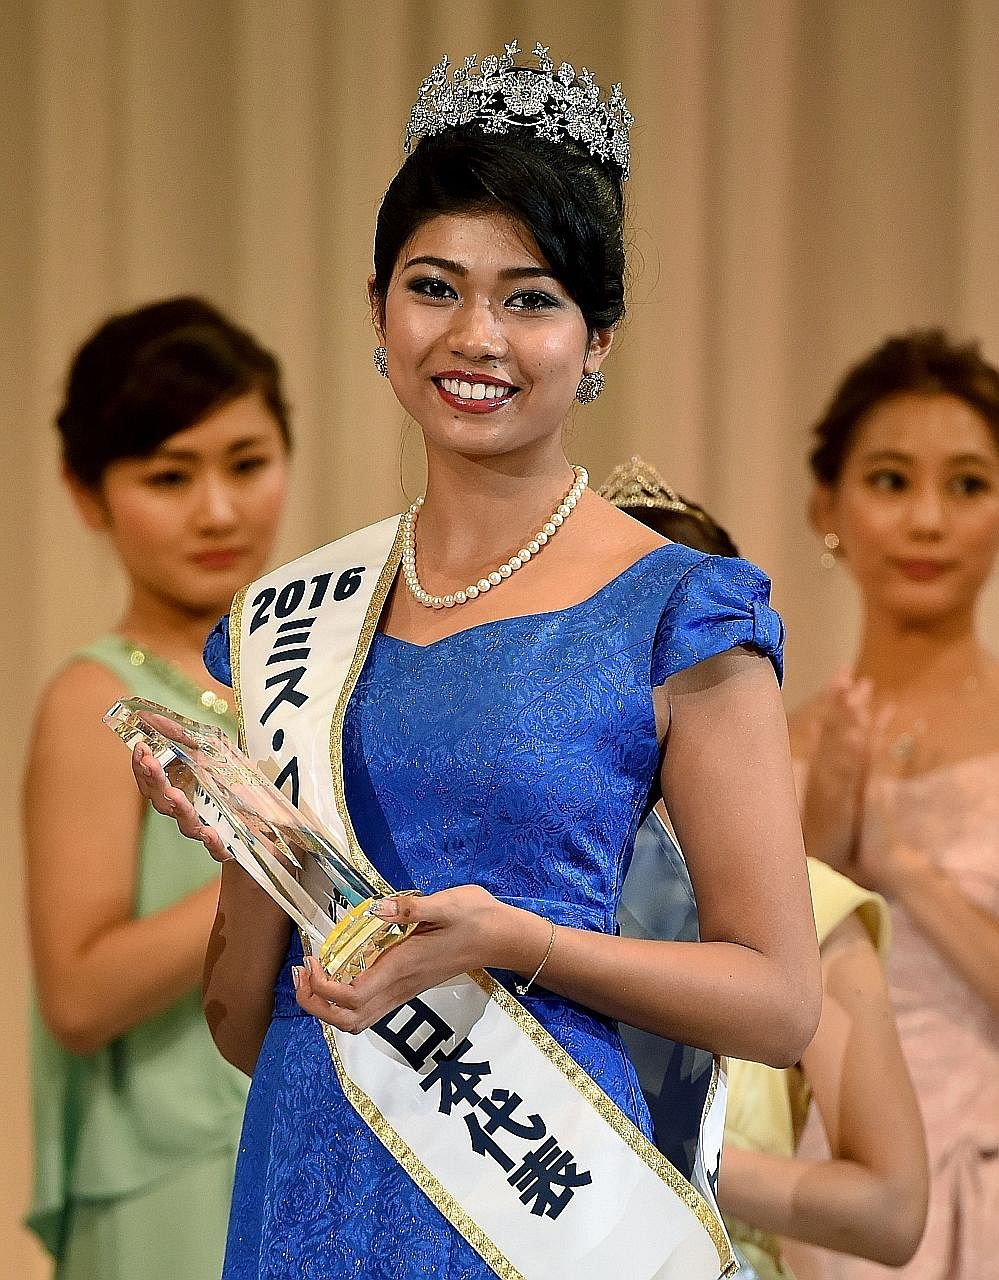 Ms Yoshikawa, born in Tokyo to an Indian father and a Japanese mother, has vowed to continue the fight against racial prejudice in homogeneous Japan.